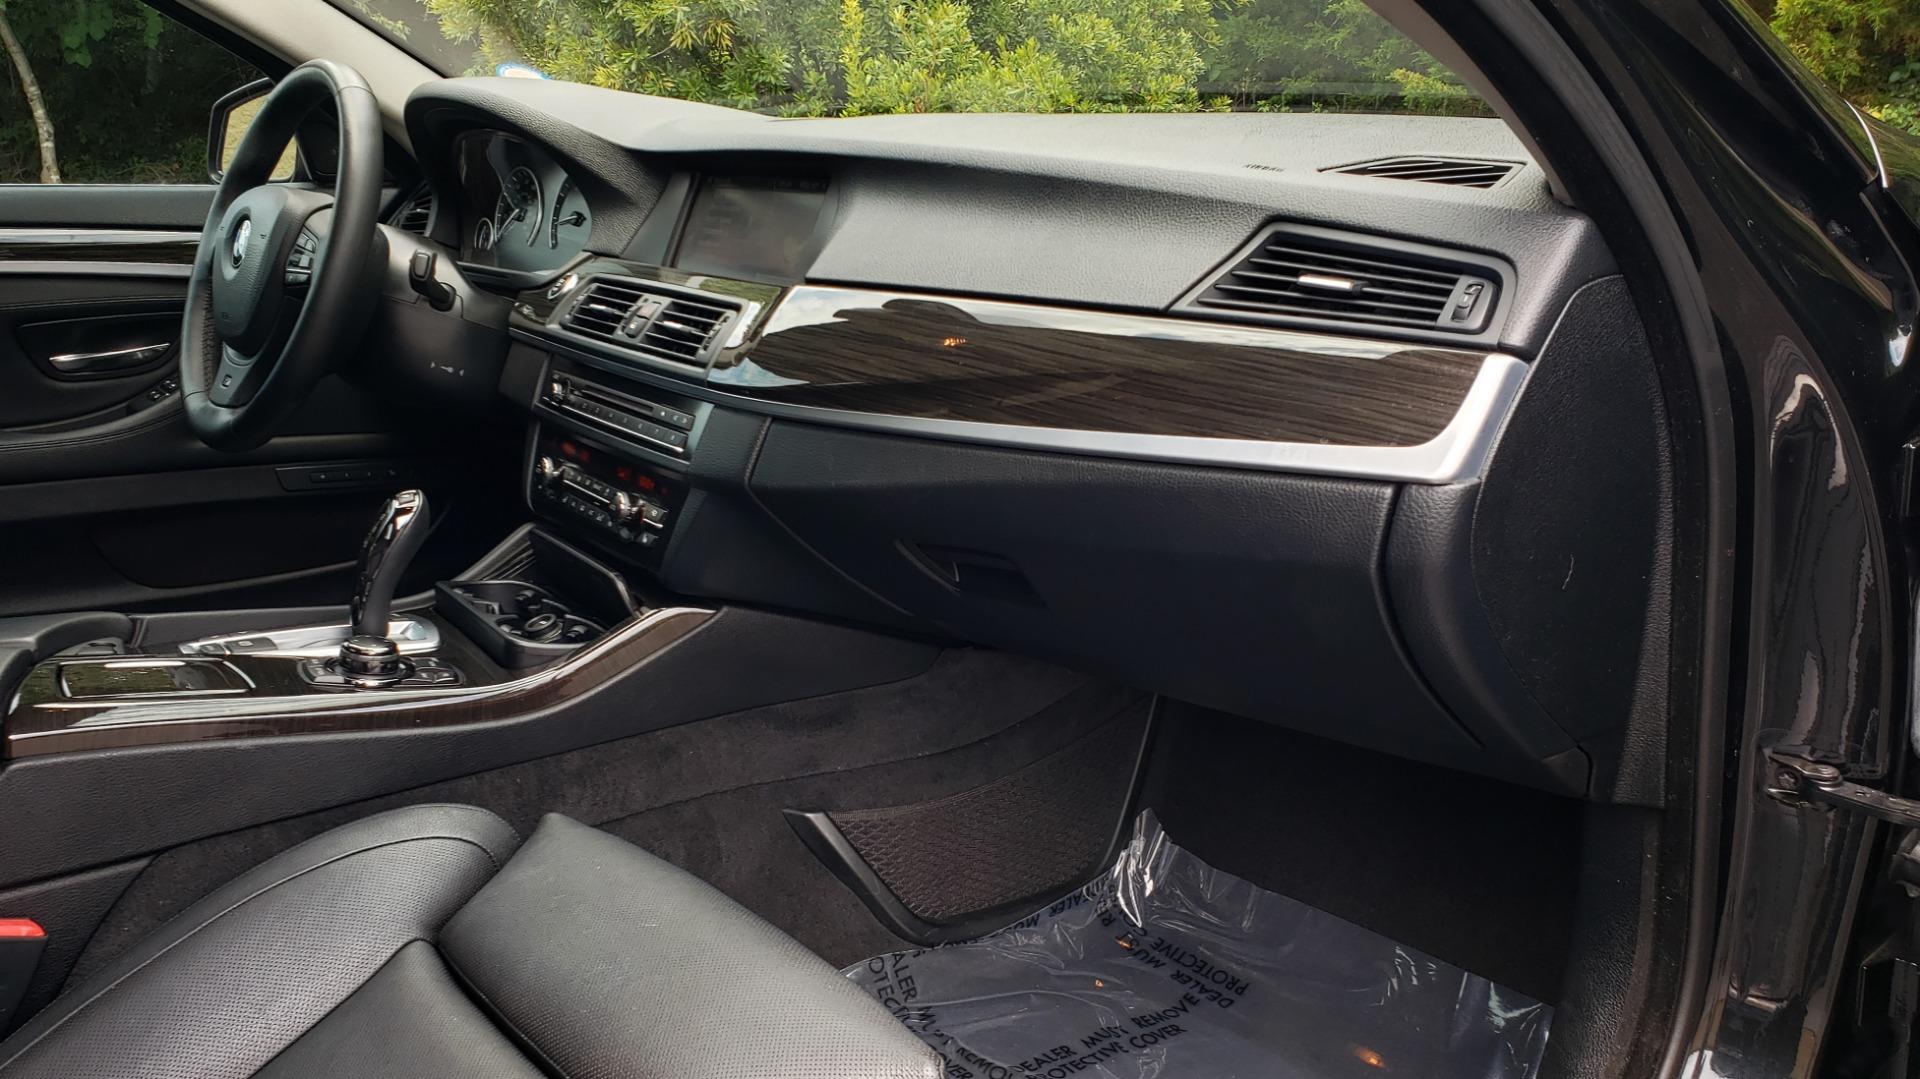 Used 2013 BMW 5 SERIES 550I XDRIVE LUX PKG / EXEC / COLD WTHR / NAV / SUNROOF / REARVIEW for sale Sold at Formula Imports in Charlotte NC 28227 61